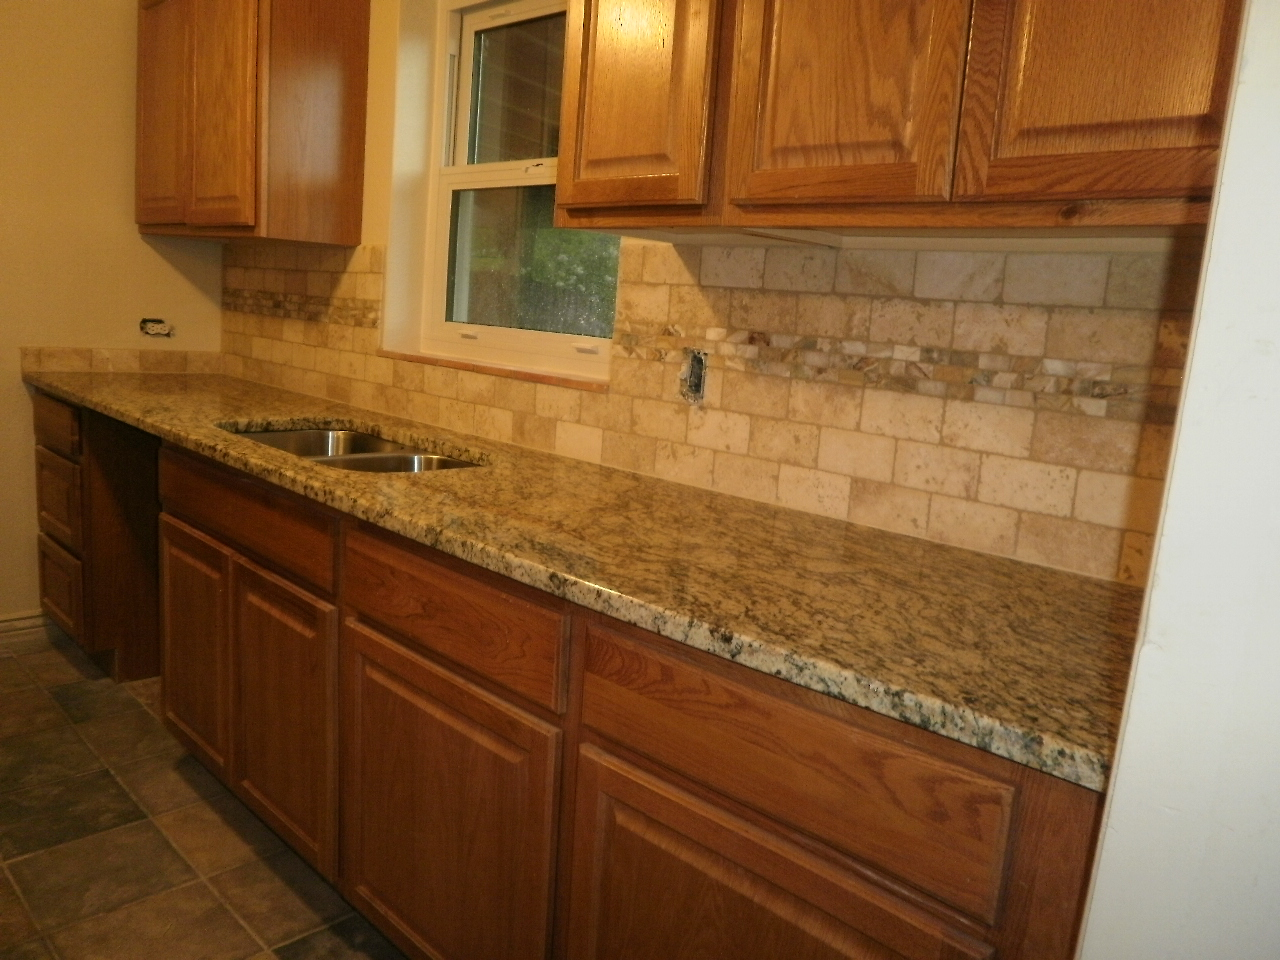 Santa cecilia granite backsplash ideas - Kitchen backsplash ideas pictures ...